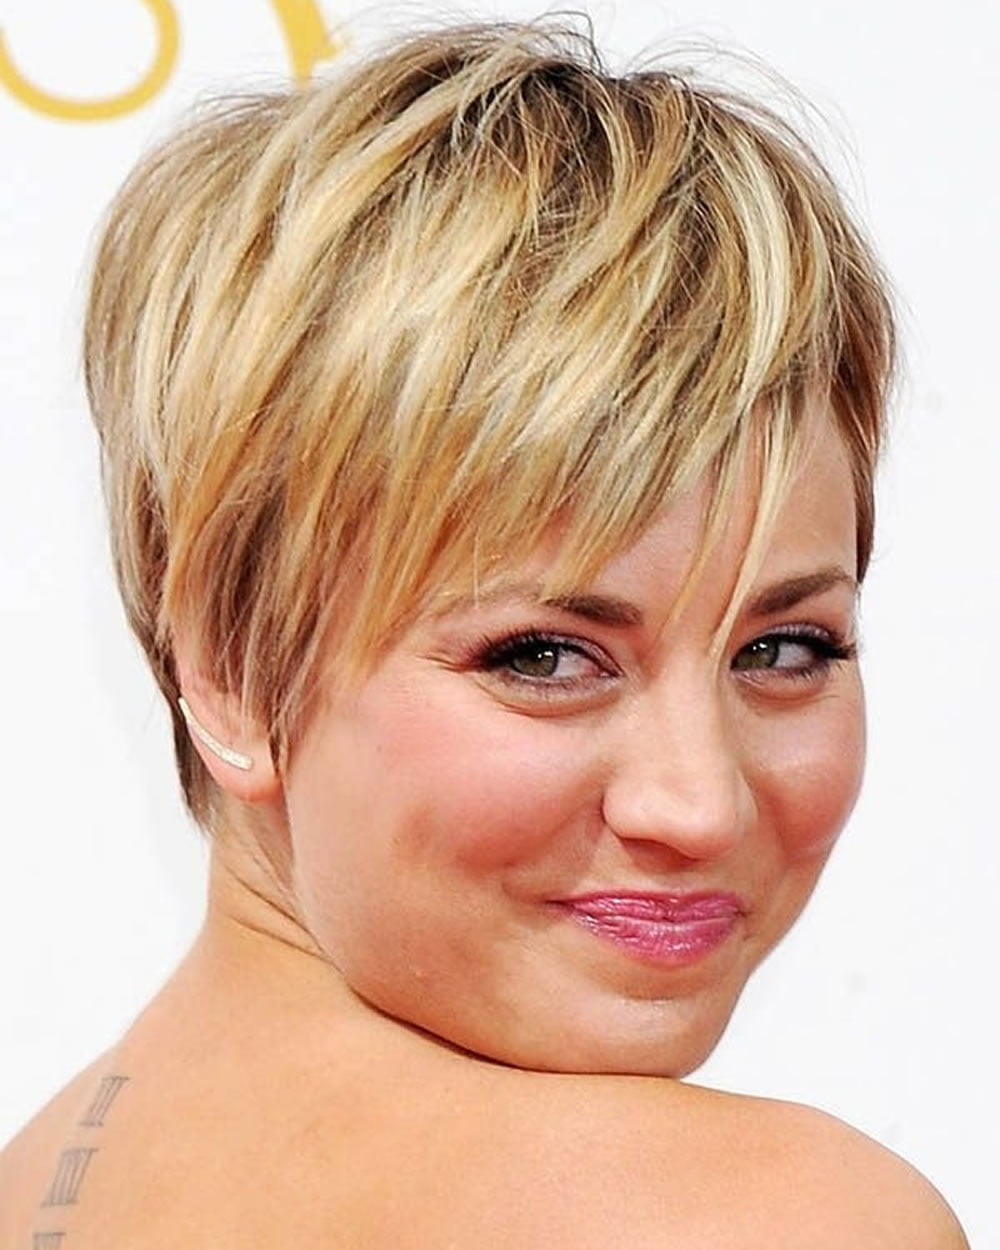 Pixie Hairstyles Fine Hair for Round Face 2018,2019 \u2013 HAIRSTYLES